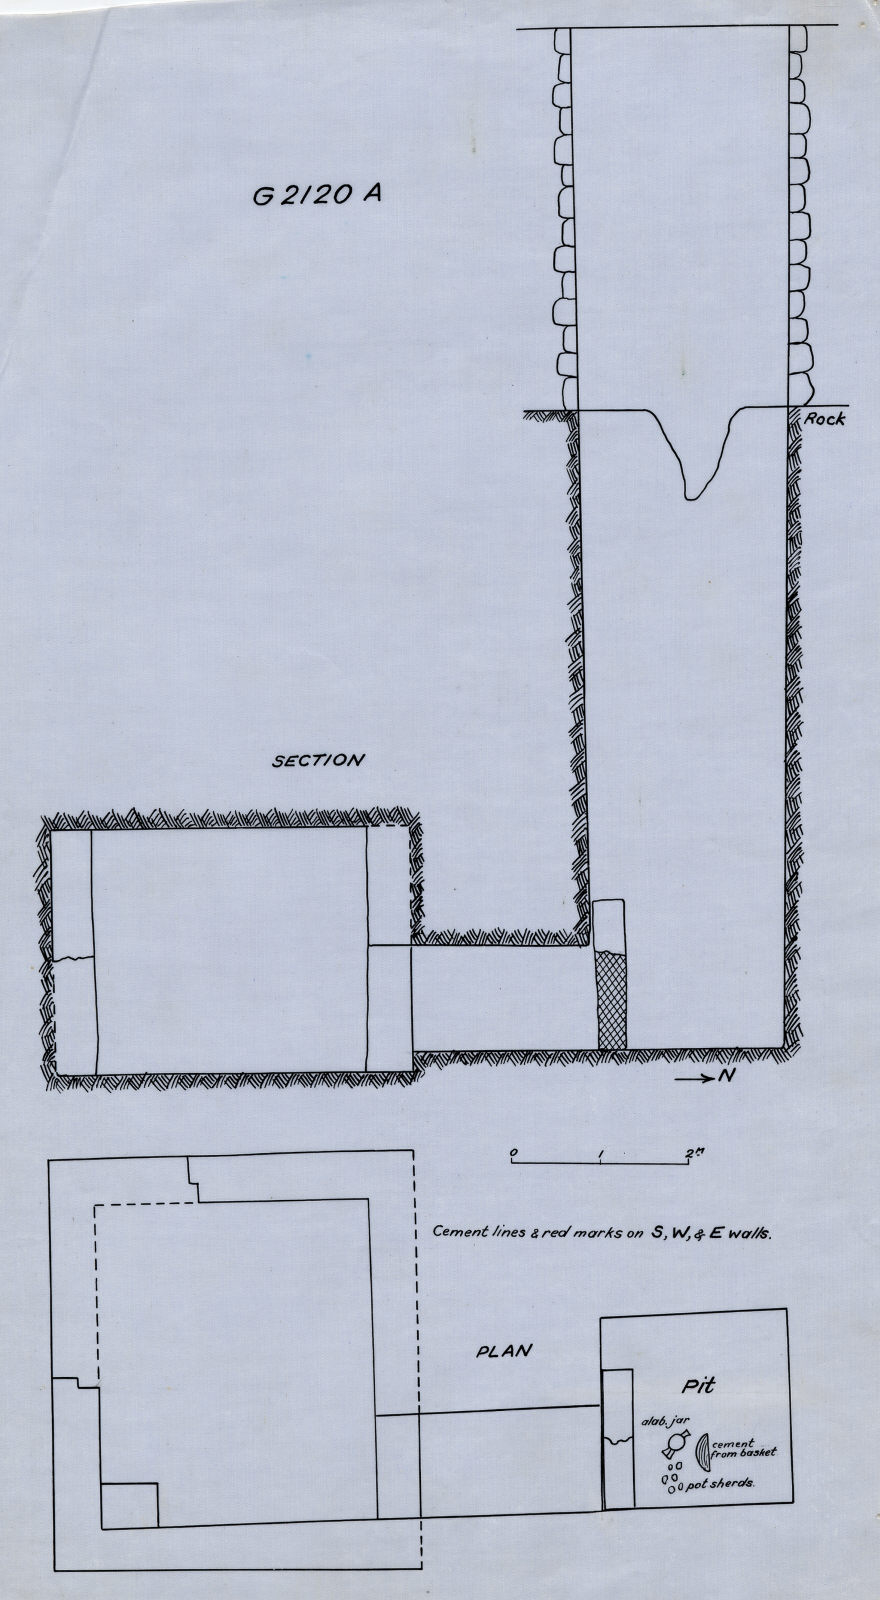 Maps and plans: G 2120, Shaft A